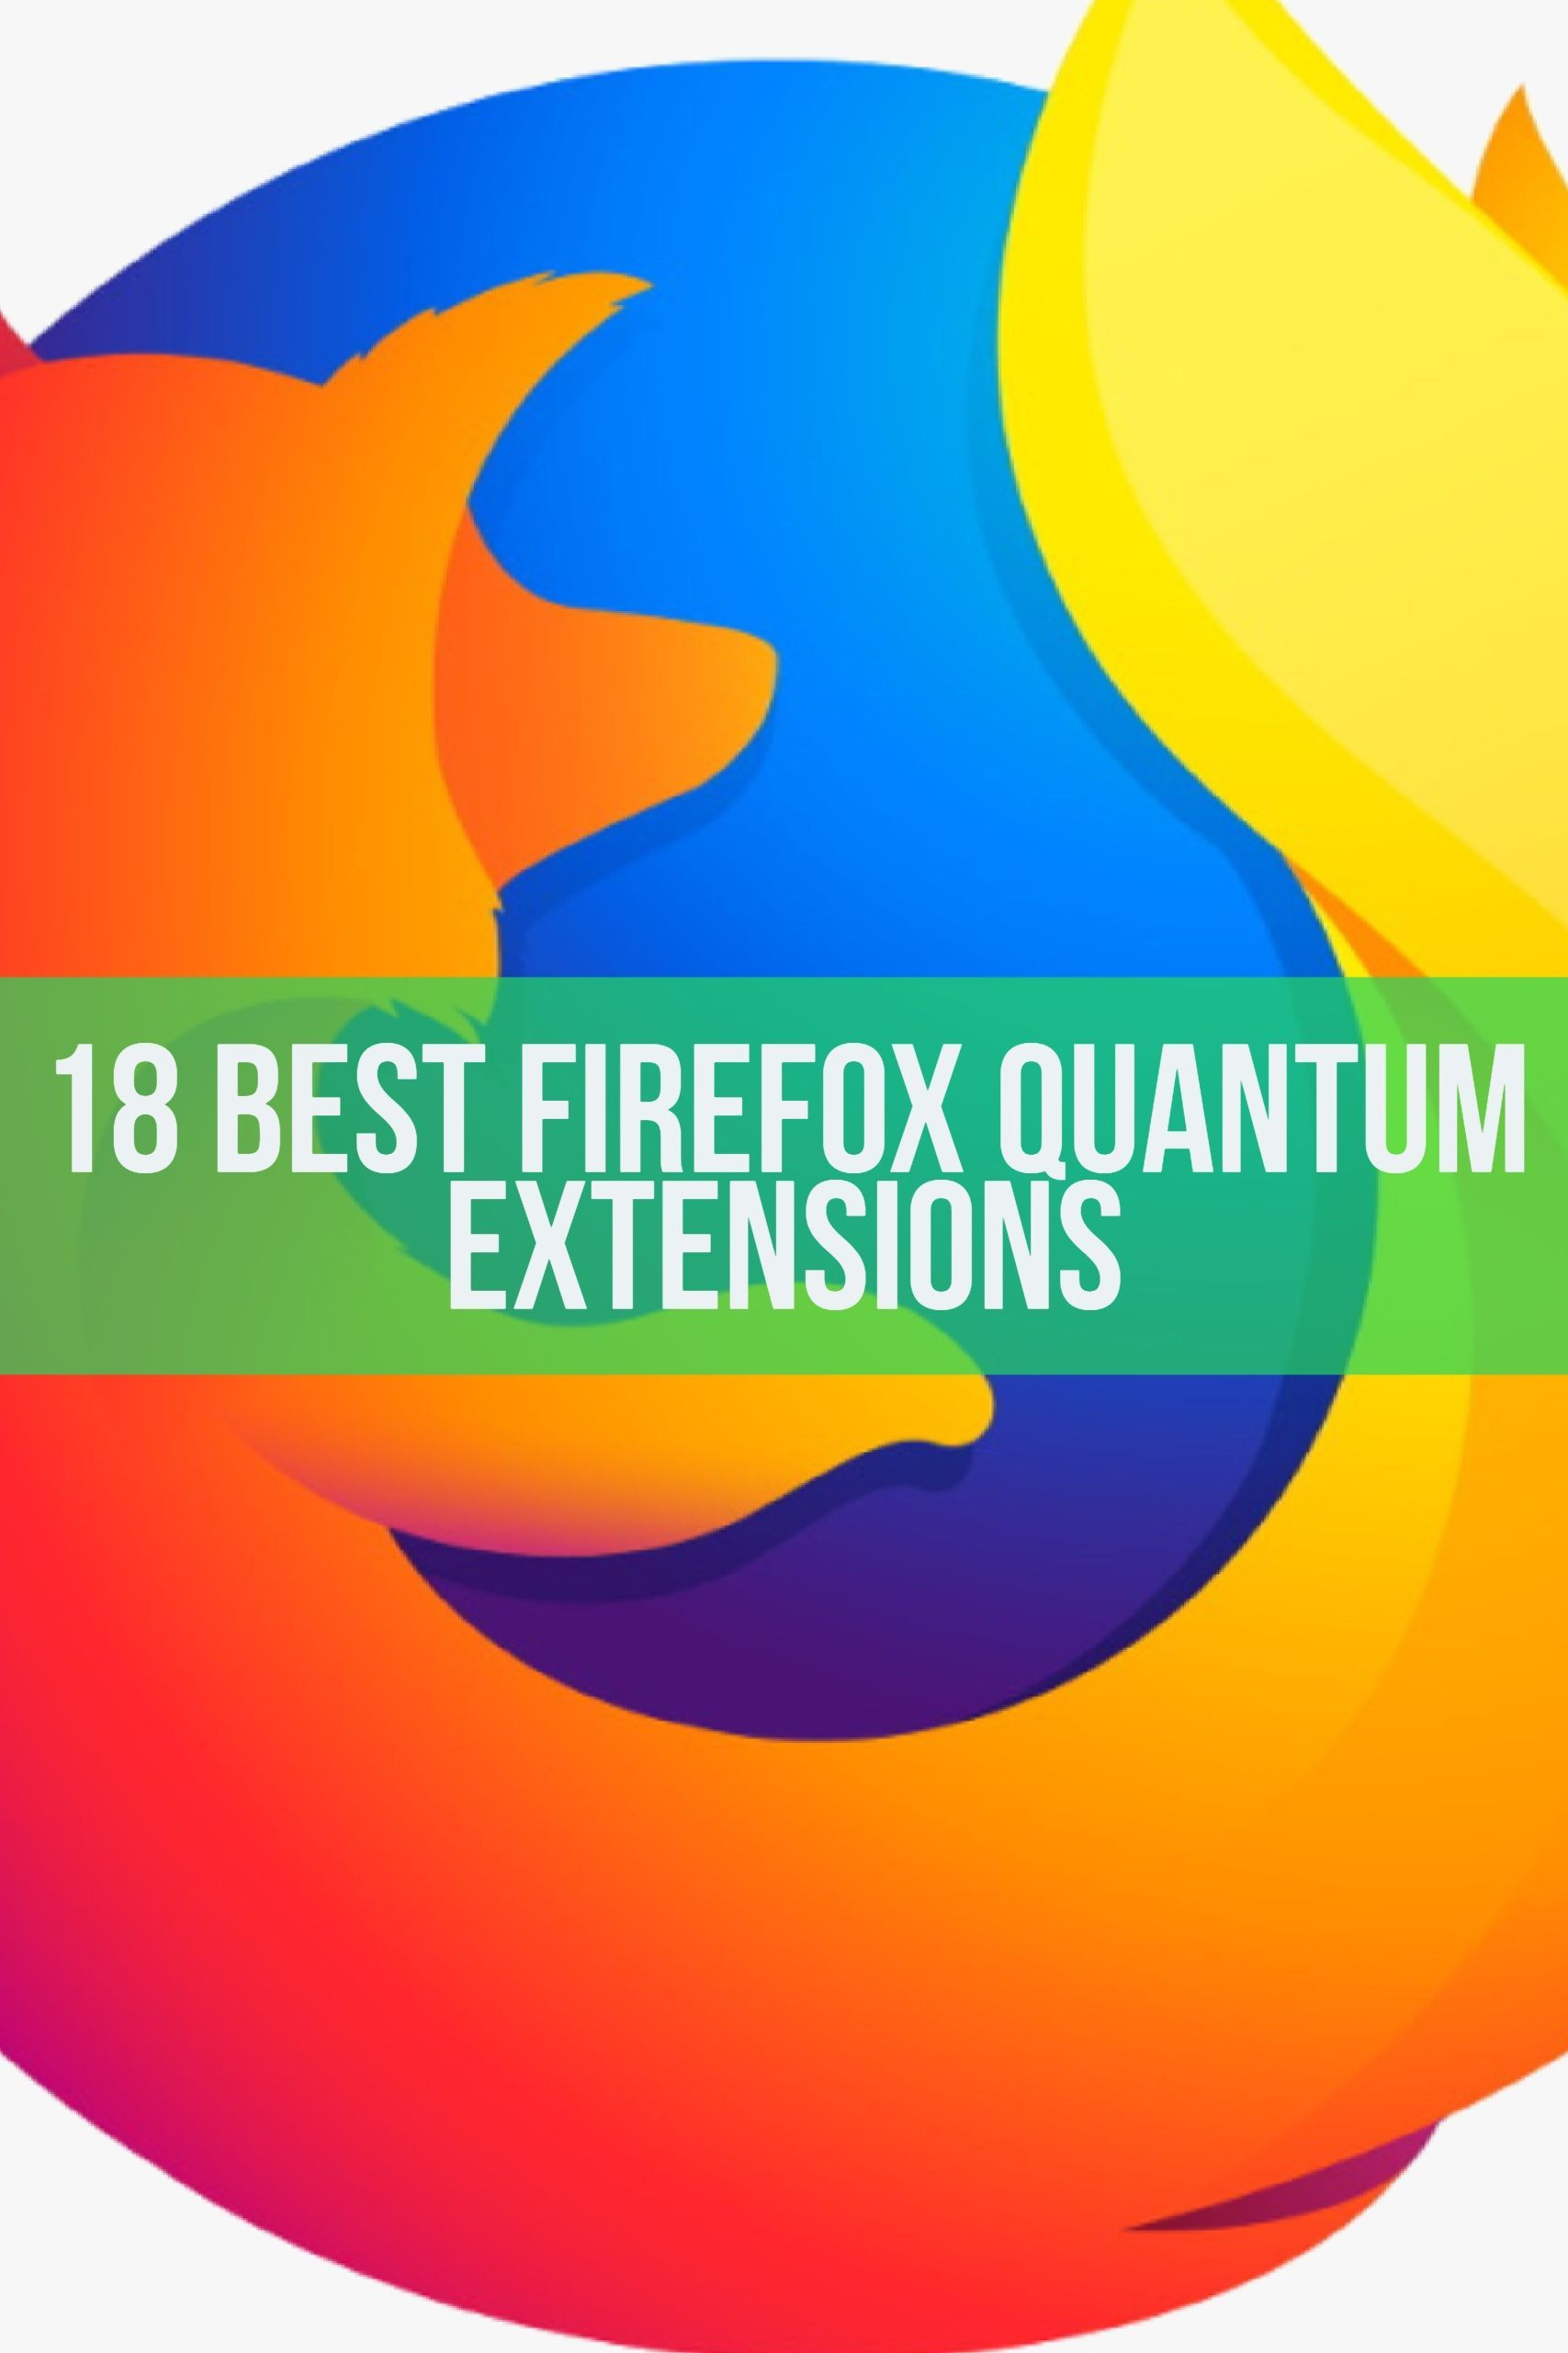 The 18 Best Firefox Quantum Extensions   Tips and Tricks   Web